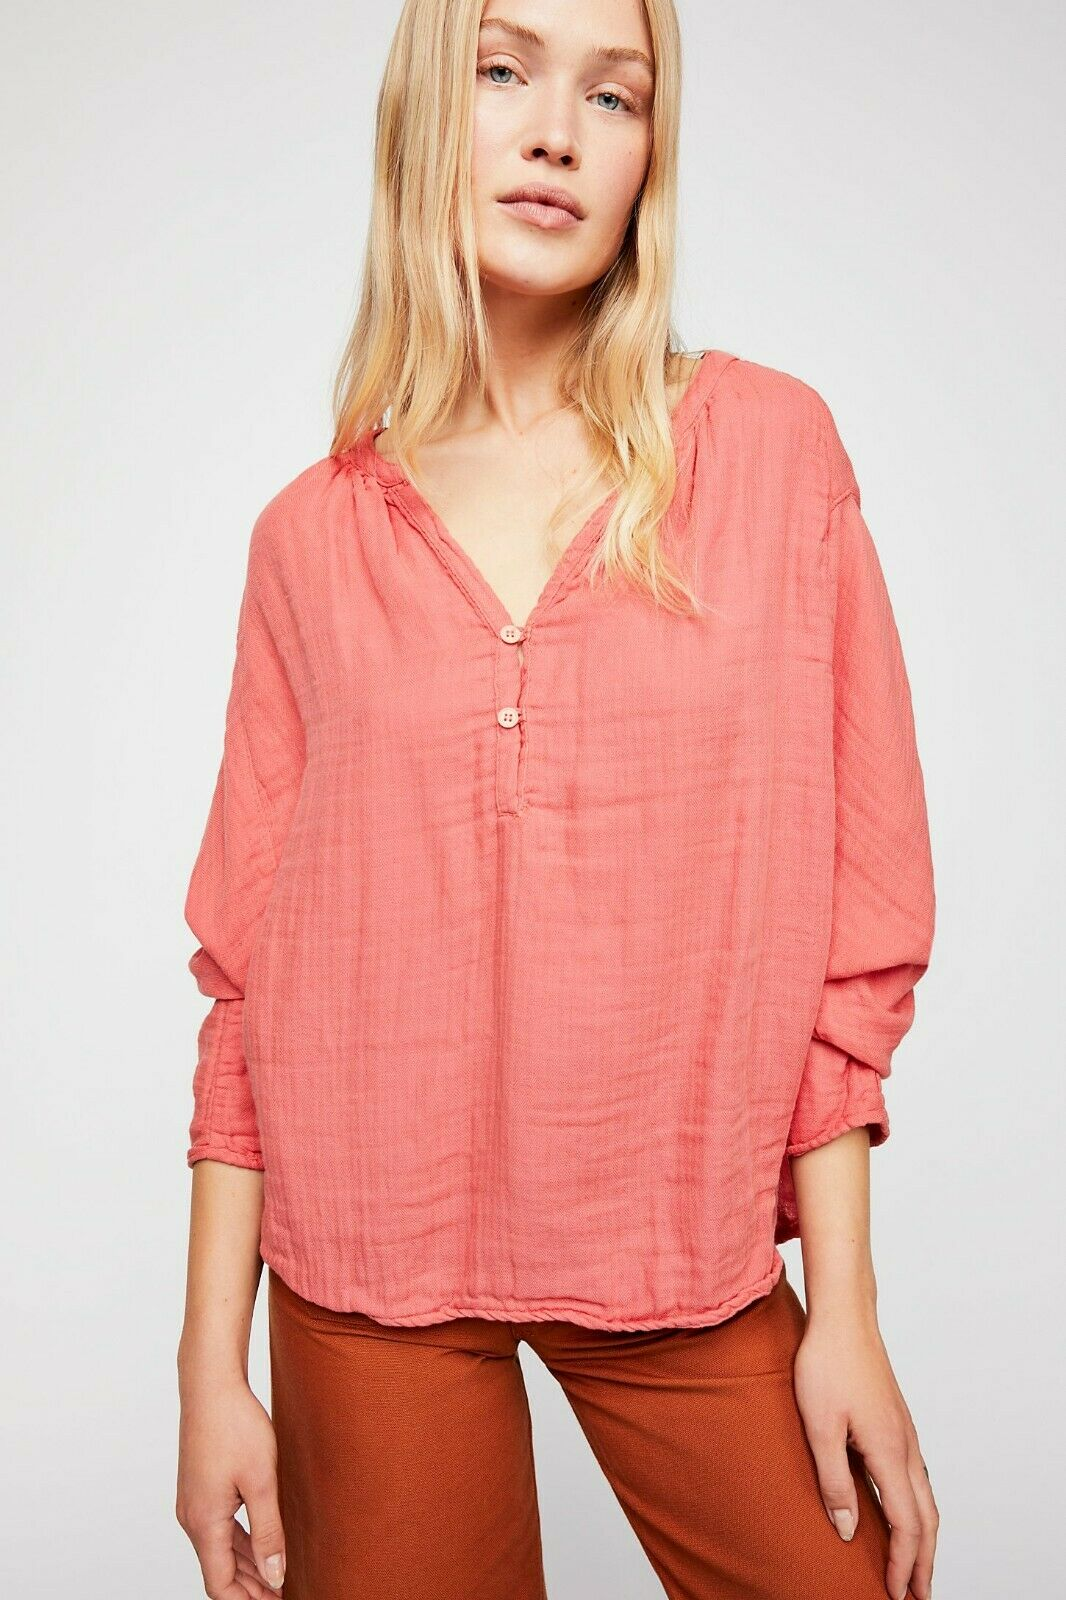 New Free People CP Shades Doublecloth Solid Farbe Coral Top Sz Small & Large